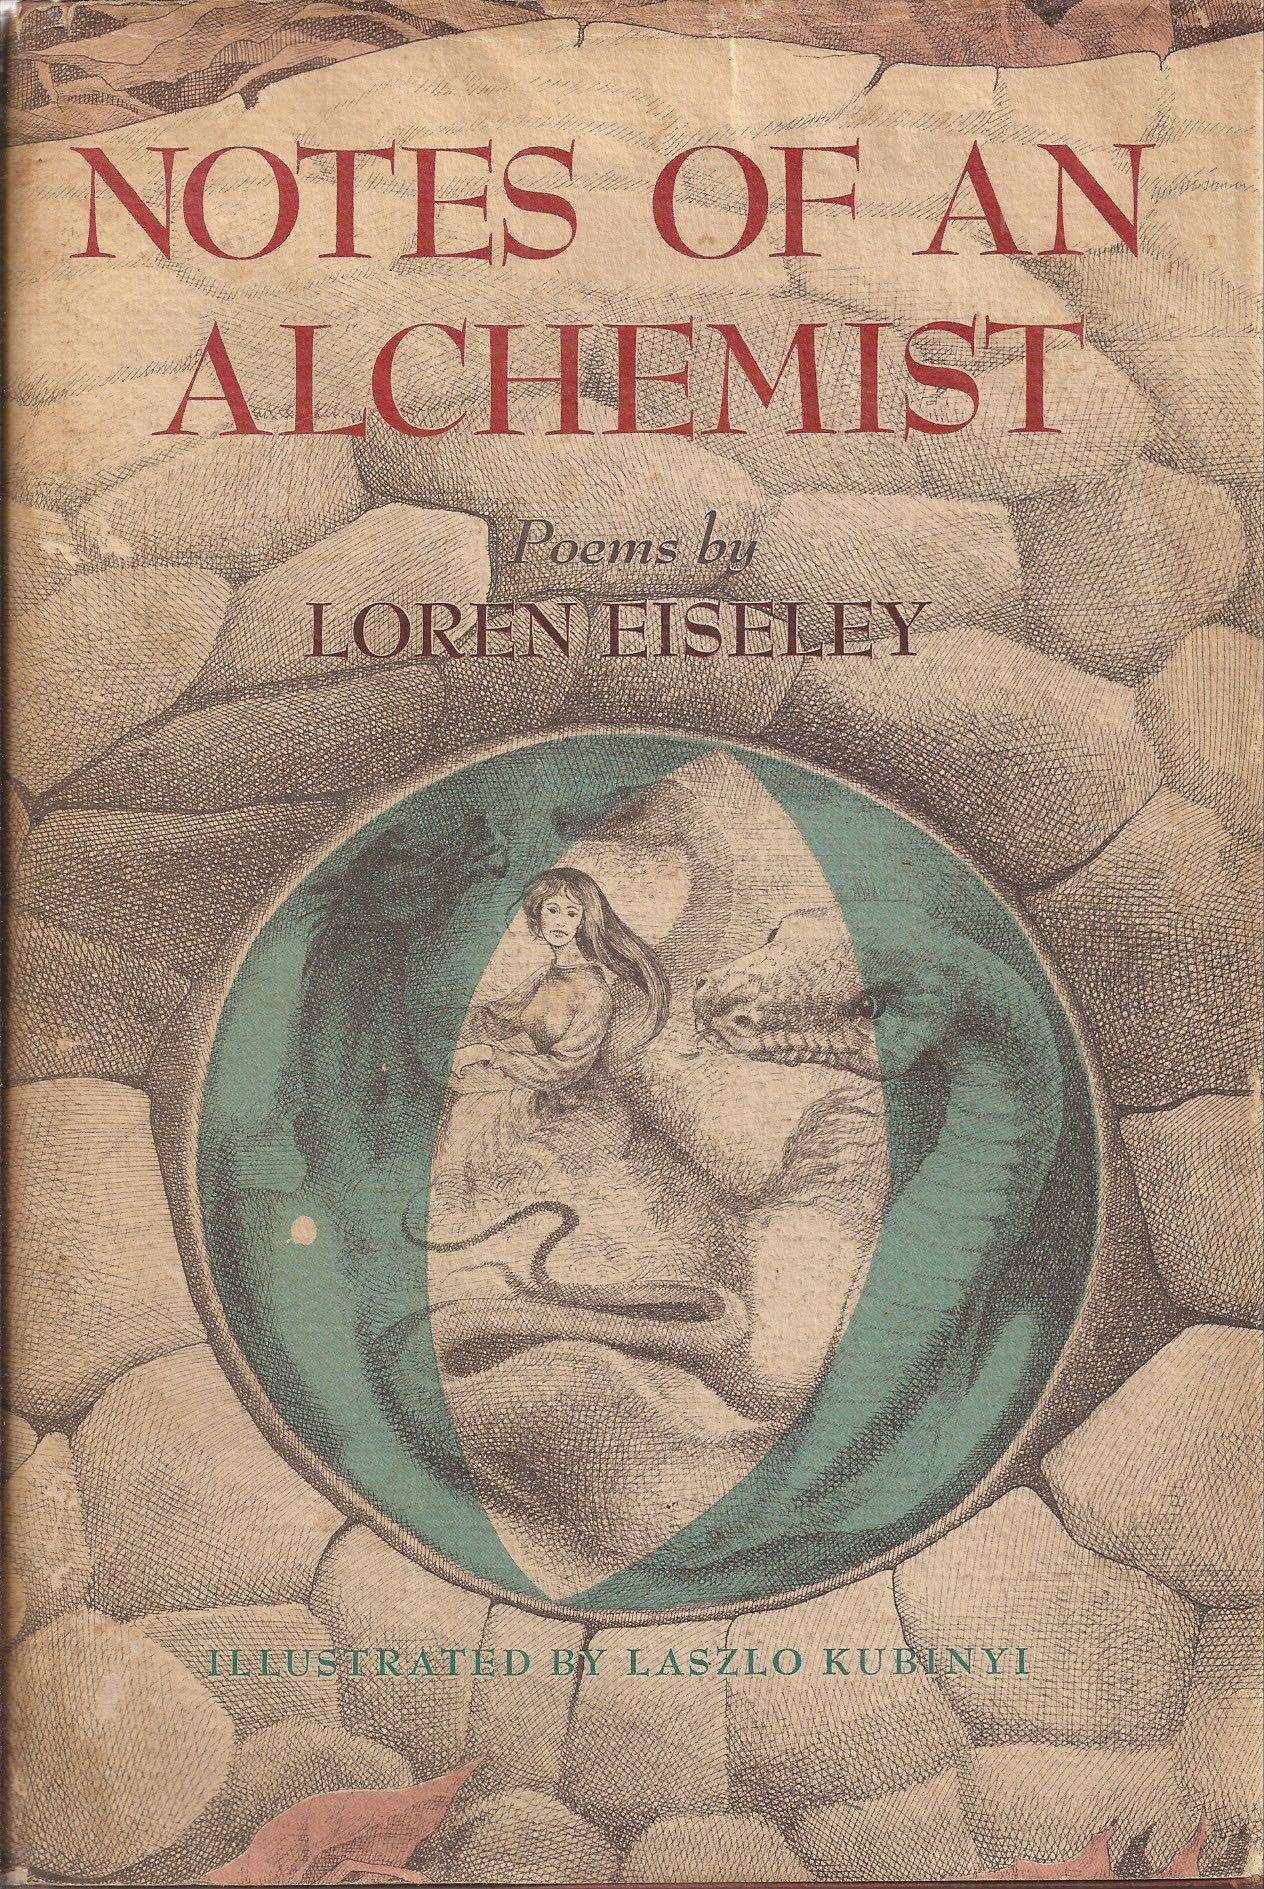 loren eiseley how death became natural essay Loren eiseley: collected essays on evolution, nature, and the cosmos vol 1 (loa #285): the immense by loren eiseley hardcover $2379 only 16 left in stock (more on the way) ships from and sold by amazoncom.